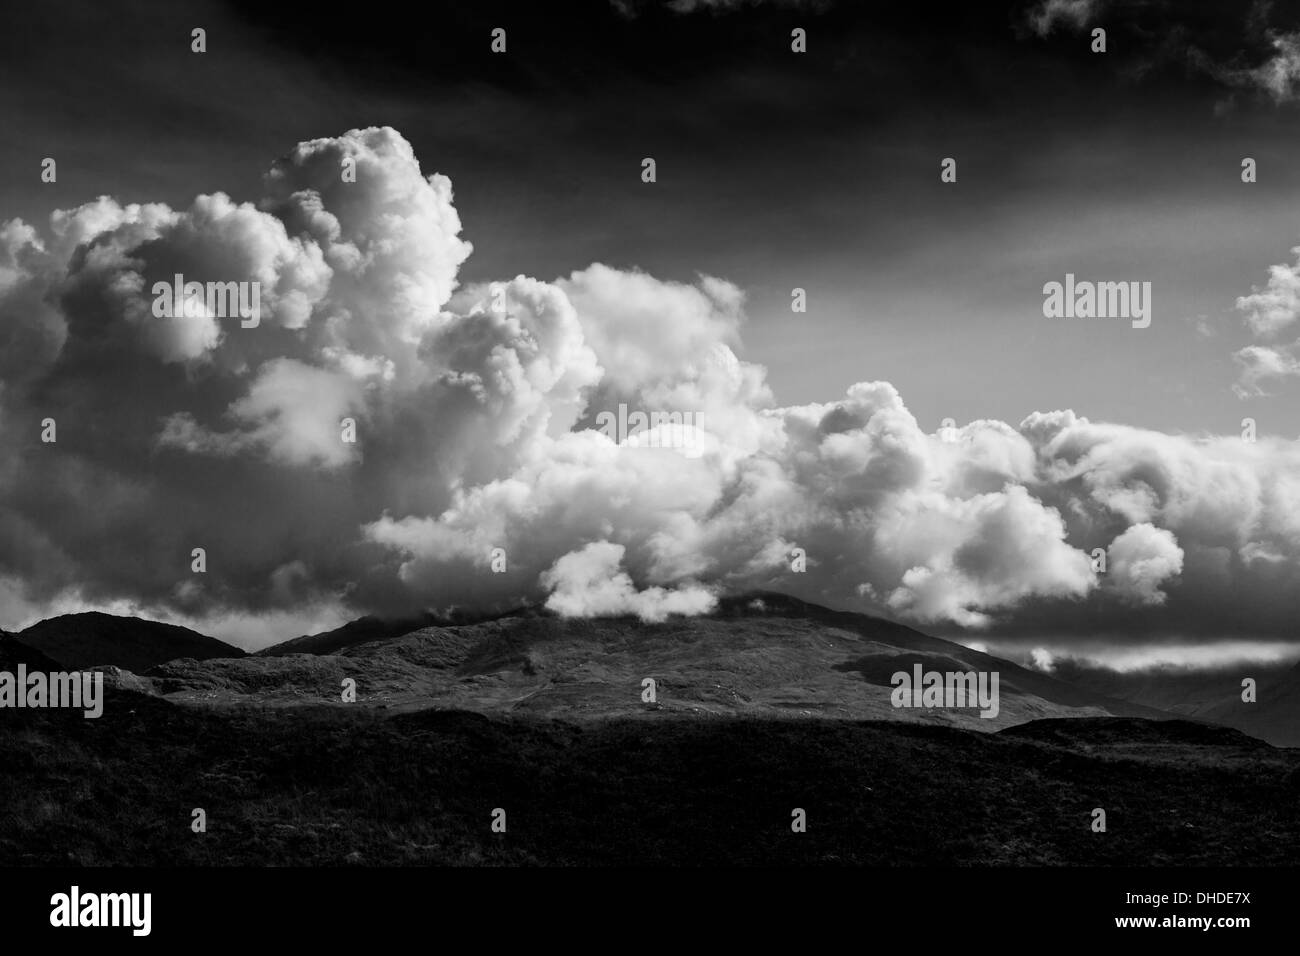 Impressive cumulonimbus clouds roll over the top of a hill - Stock Image